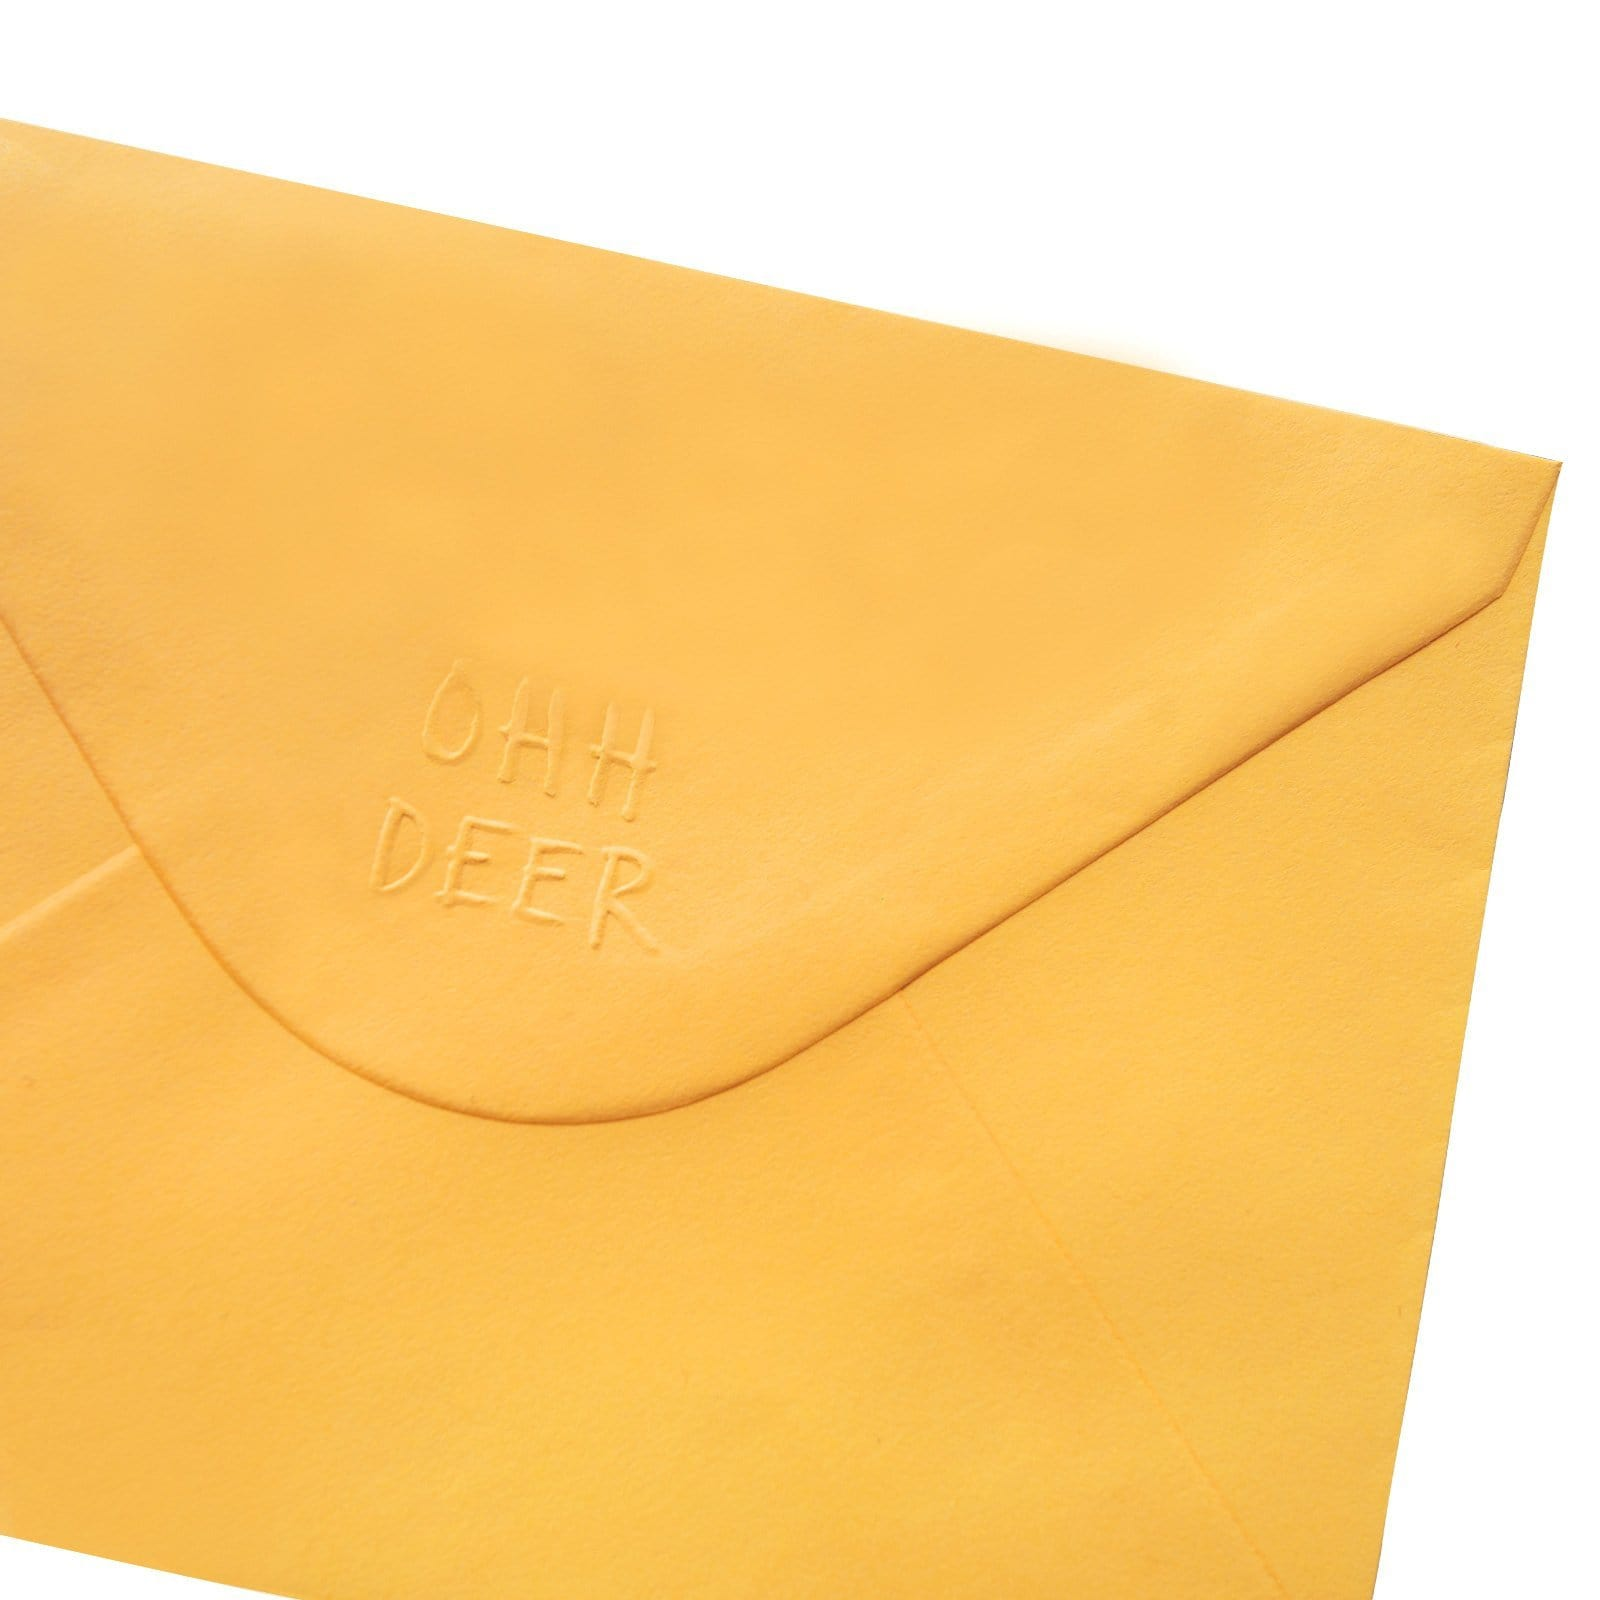 Back view of yellow envelope